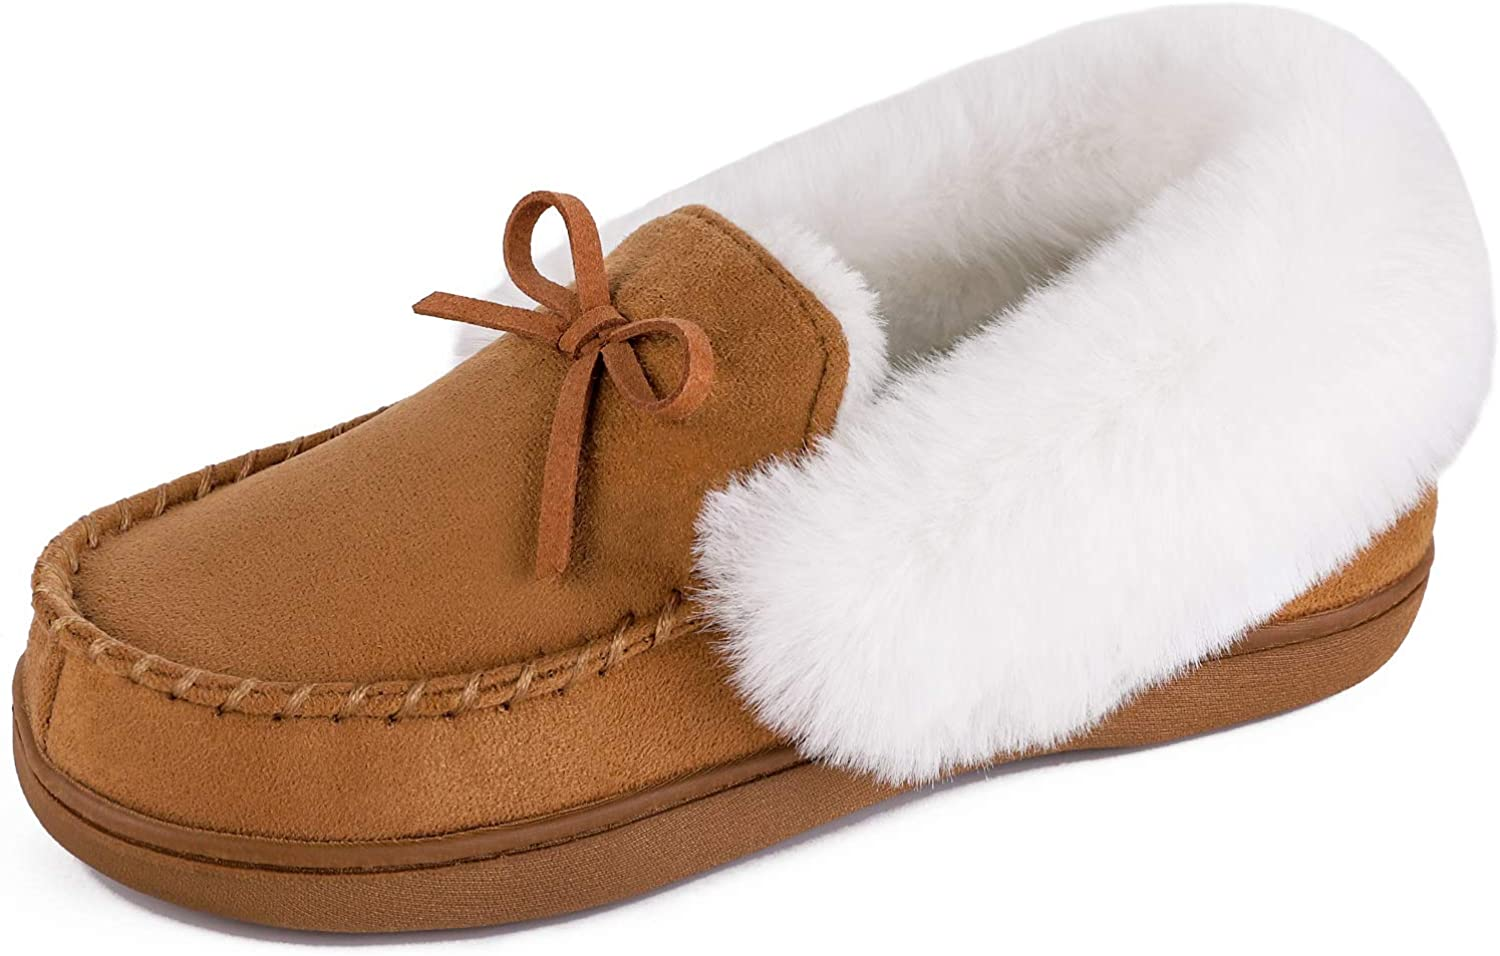 HomeIdeas Womens Faux Fur Lined Suede House Slippers, Breathable Indoor Outdoor Moccasins